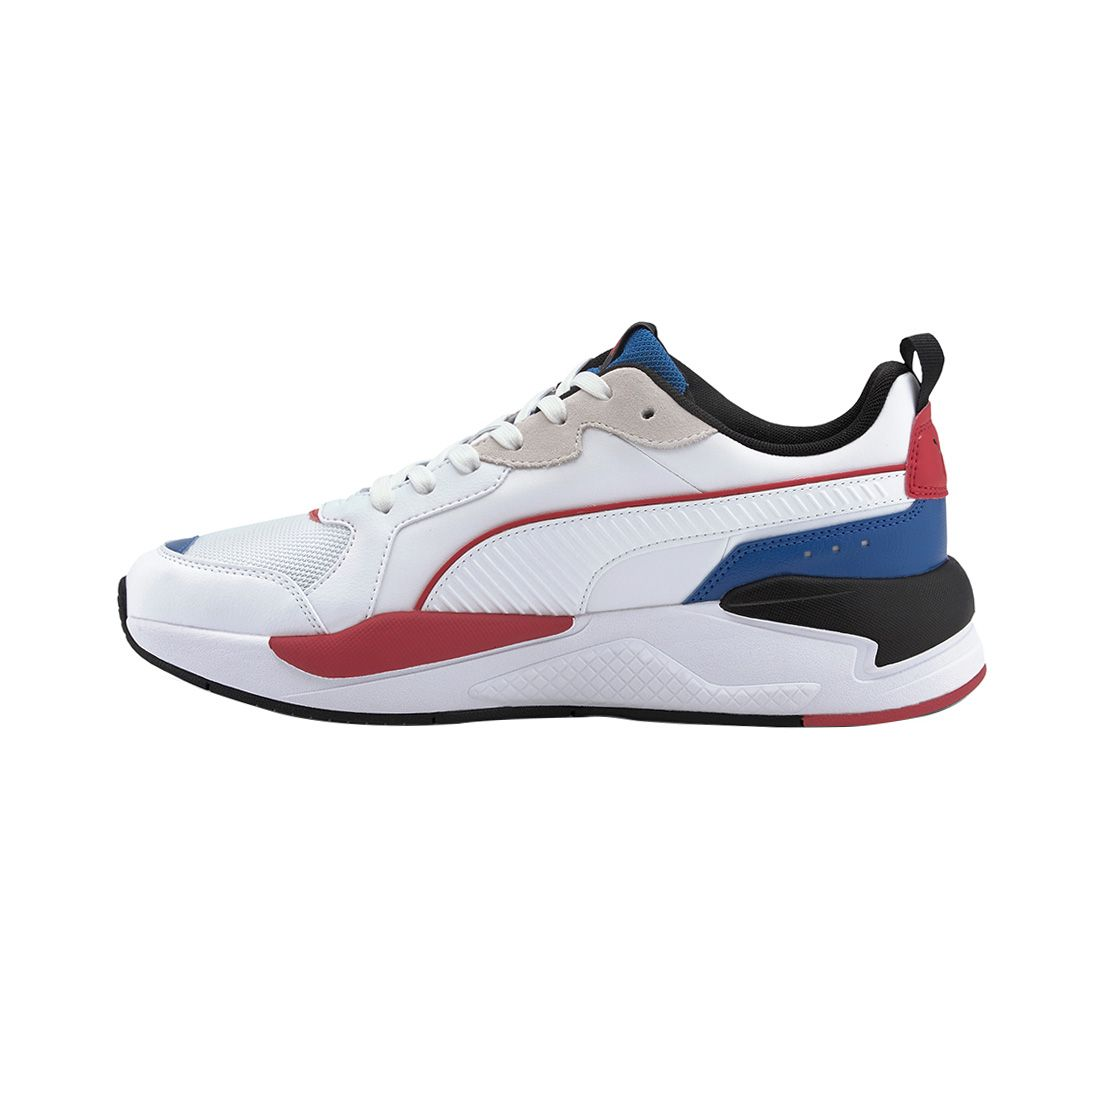 Puma X-Ray Game Blanco/Rojo/Azul